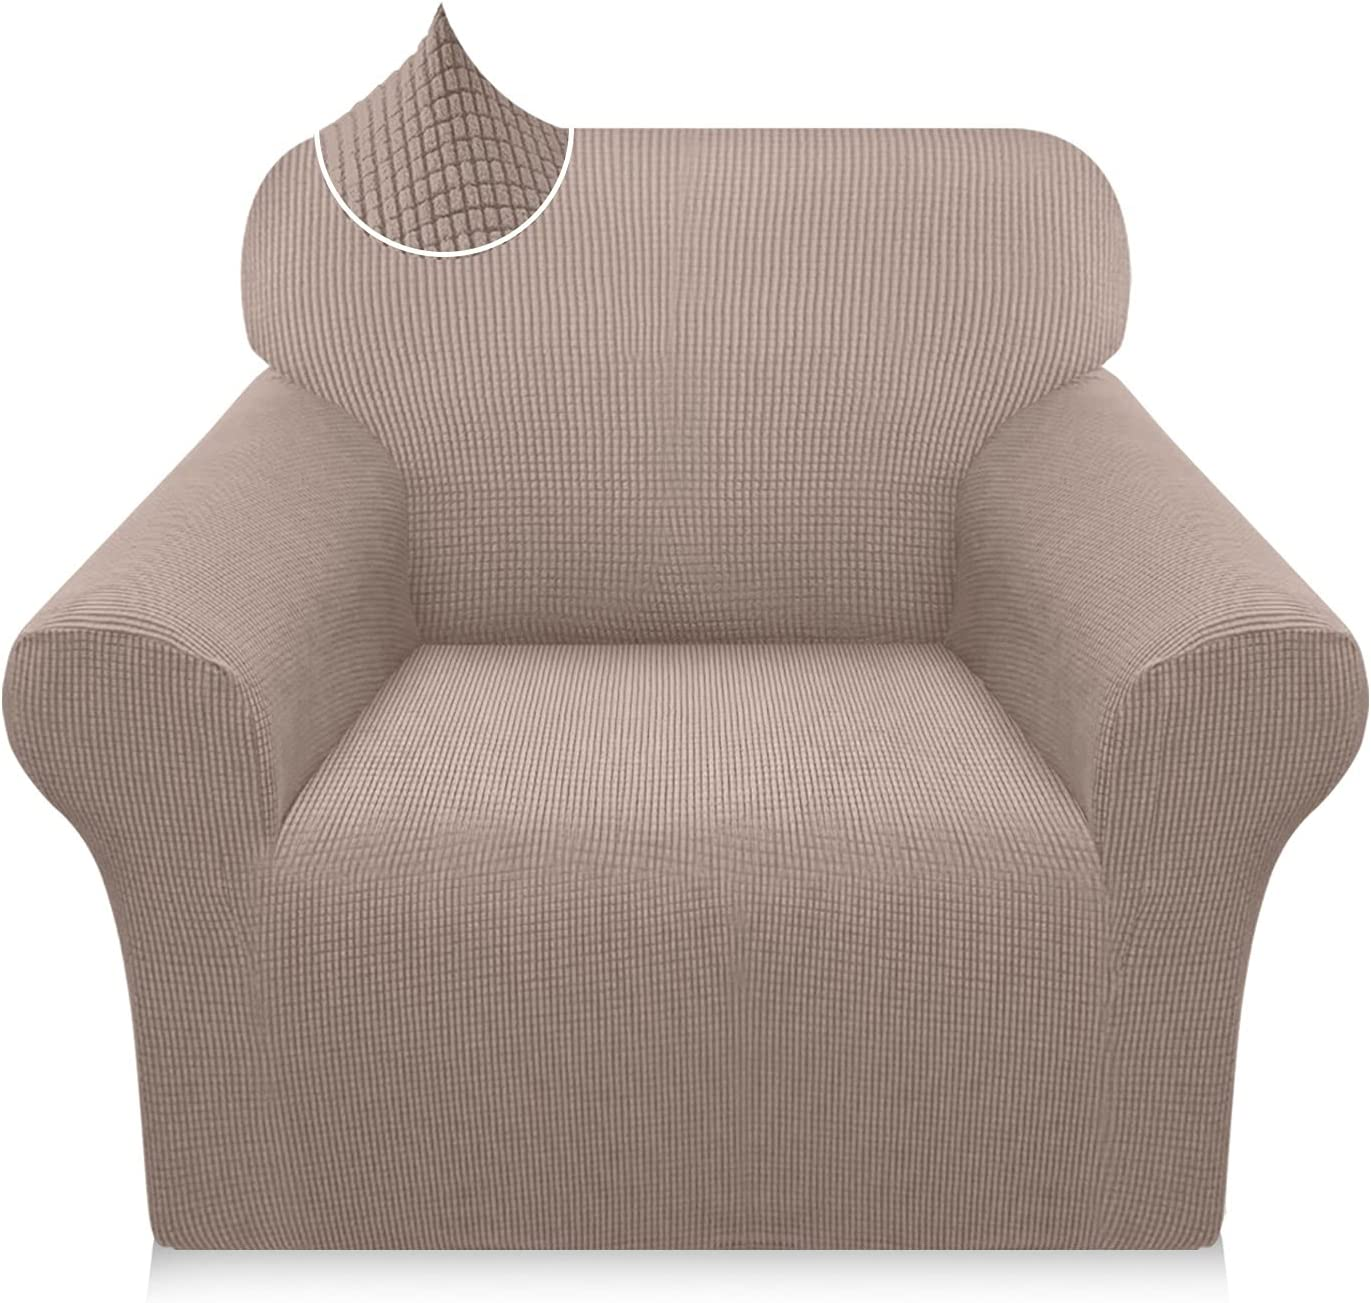 Luxurlife Super Stretch Chair Covers 1 Piece Premium Couch Covers Armchair Slipcover for Living Room Furniture Protector with Non Slip Foam Rollers (Small, Sand)